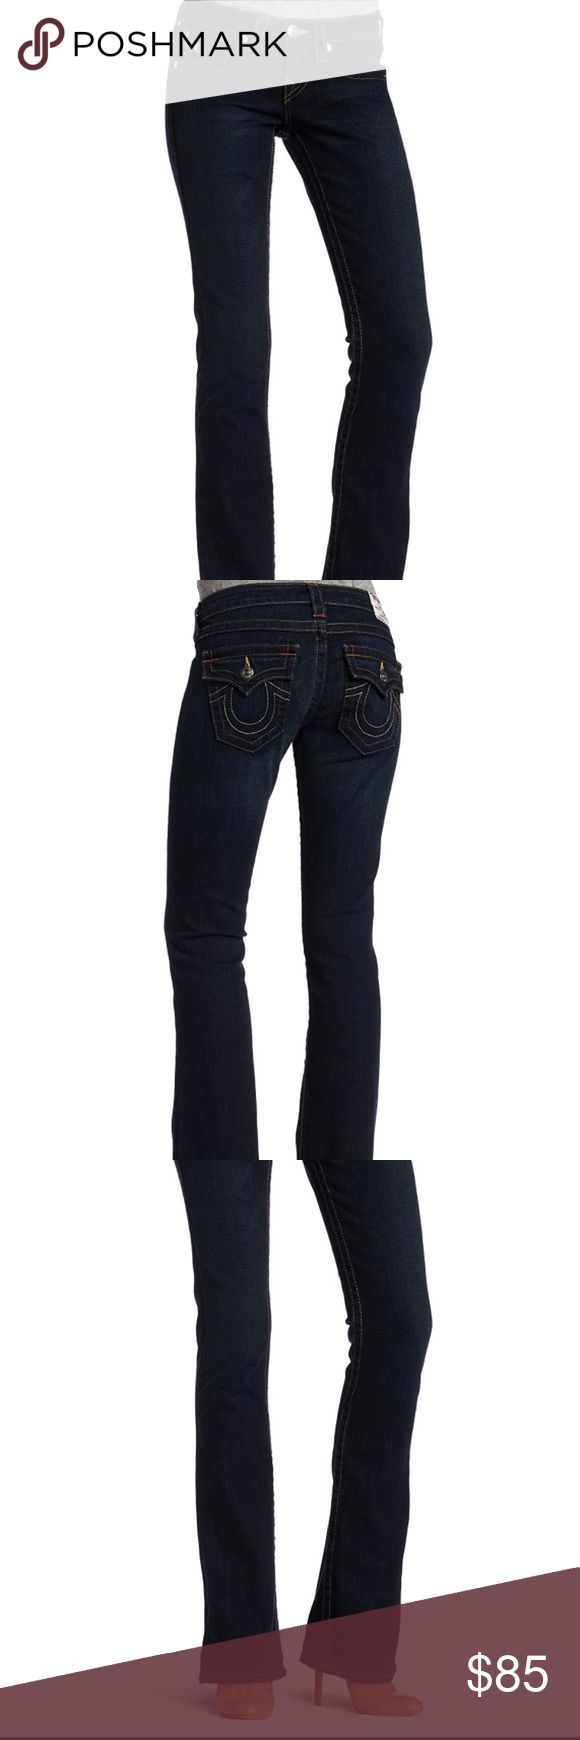 """TRUE RELIGION BECKY EAD-VERA CRUZ Dark Wash JEANS GUARANTEED 100% authentic LIKE NEW FLAWLESS TRUE RELIGION BECKY DARK WASH EAD-VERA CRUZ Flattering Bootcut JEAN. Size 24 with stretch. Contrast bright ORANGE stitching really makes this version stand out! Measurements: waist 14"""" across flat, Rise 7"""" in front, Inseam 35"""". True Religion Jeans Boot Cut"""